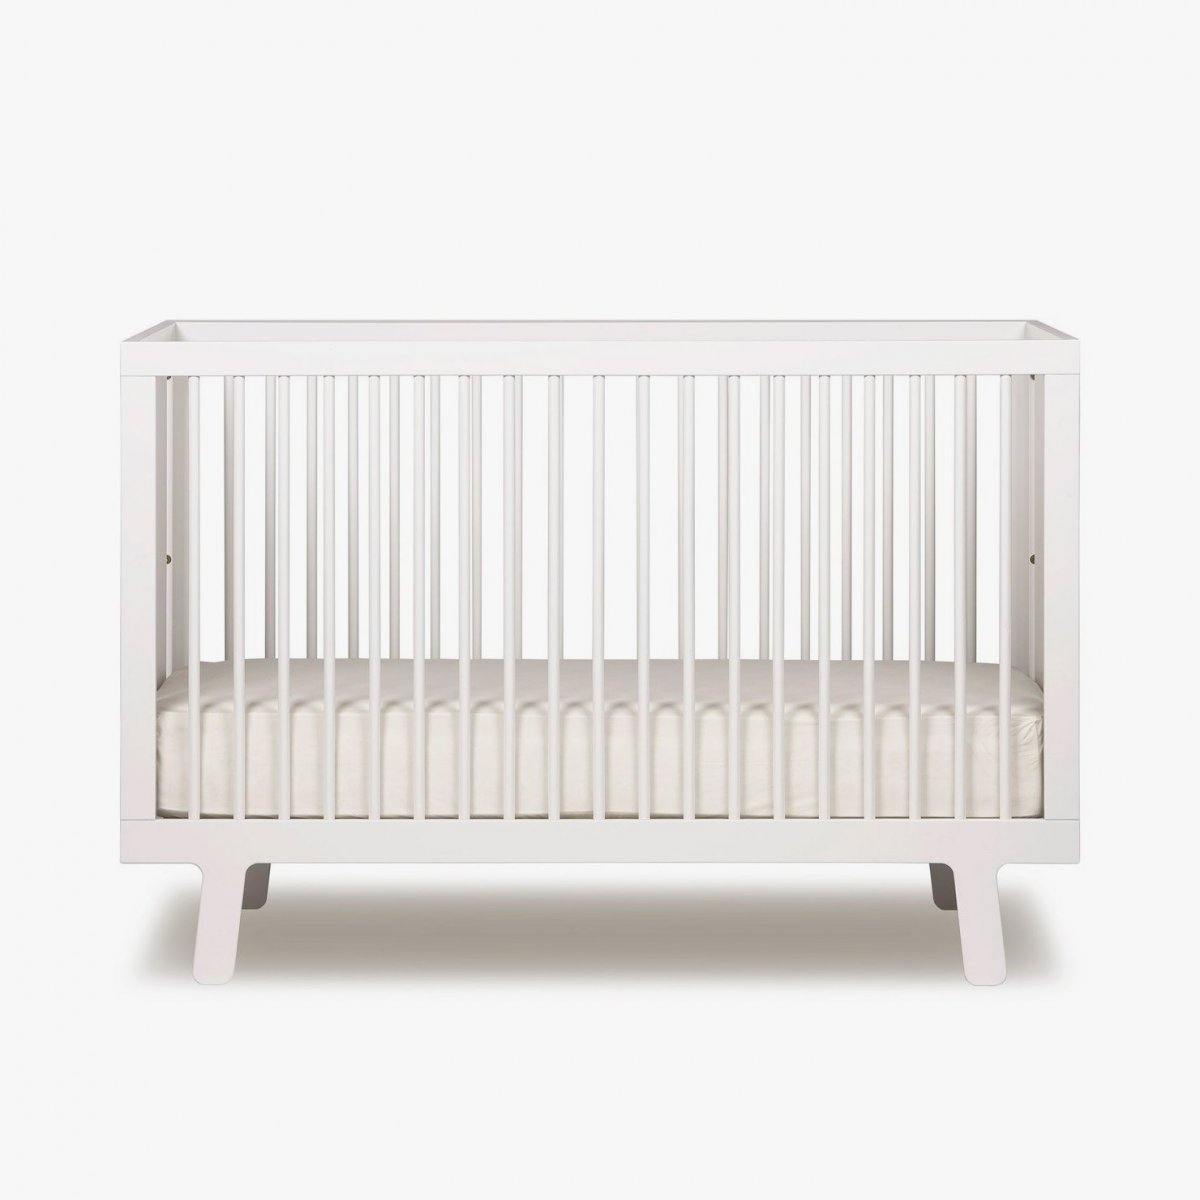 Sparrow Crib, white.